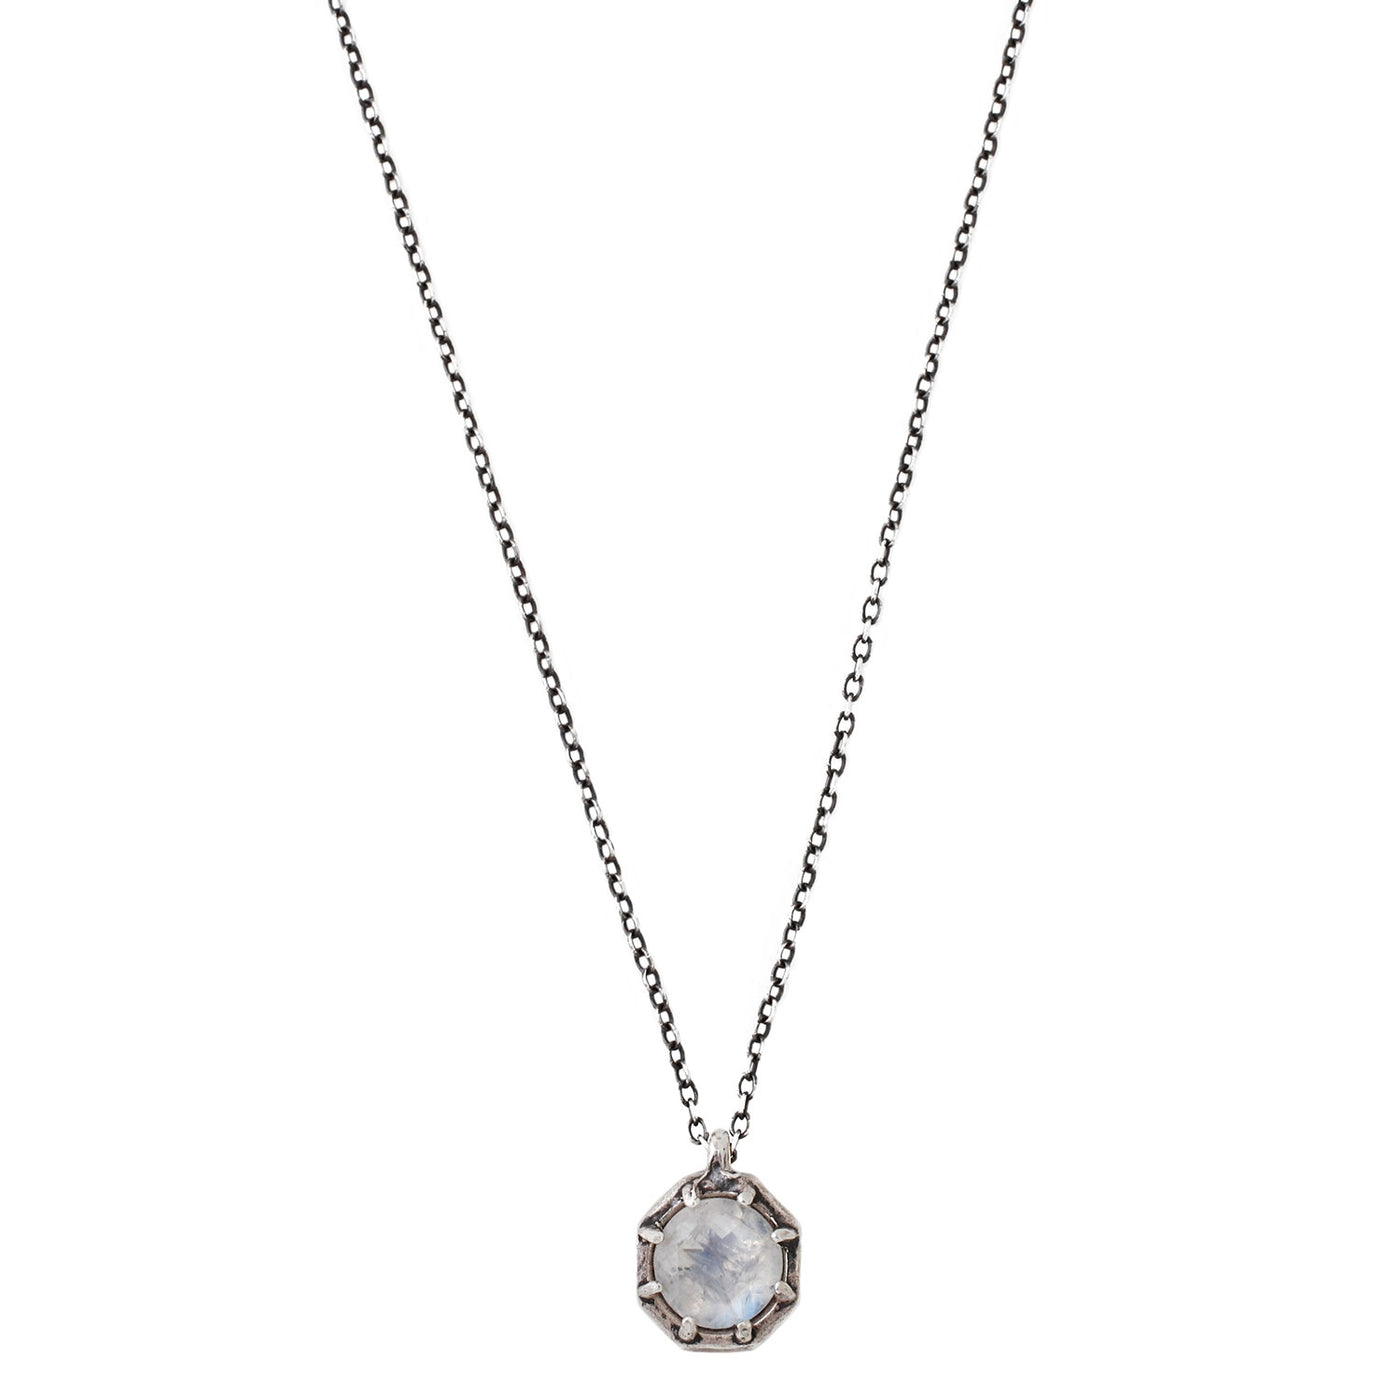 Lauren Wolf Jewelry Rainbow Moonstone Necklace in Silver